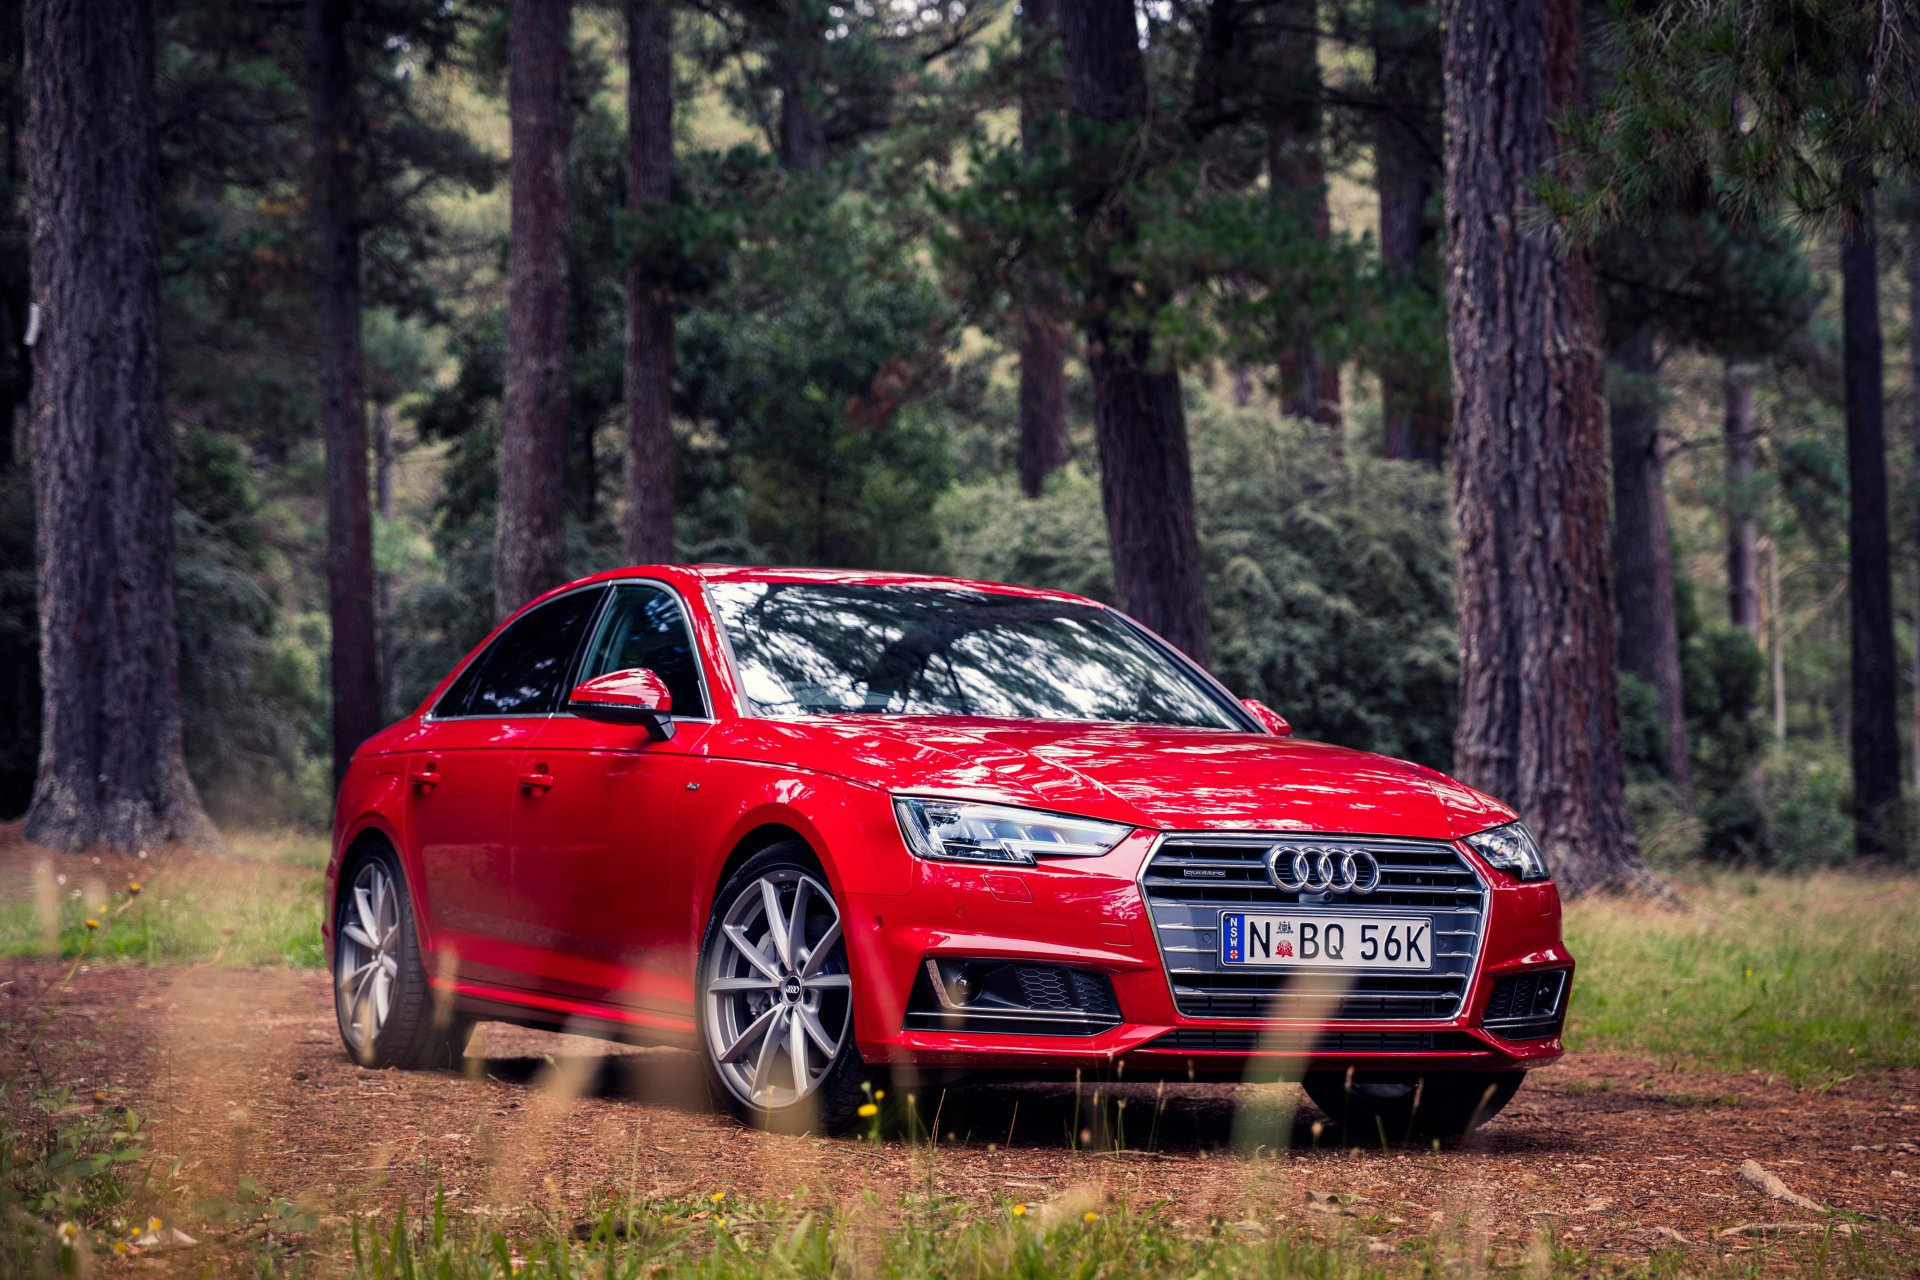 Vehicles - Audi A4  Audi Red Car Luxury Car Car Vehicle Wallpaper